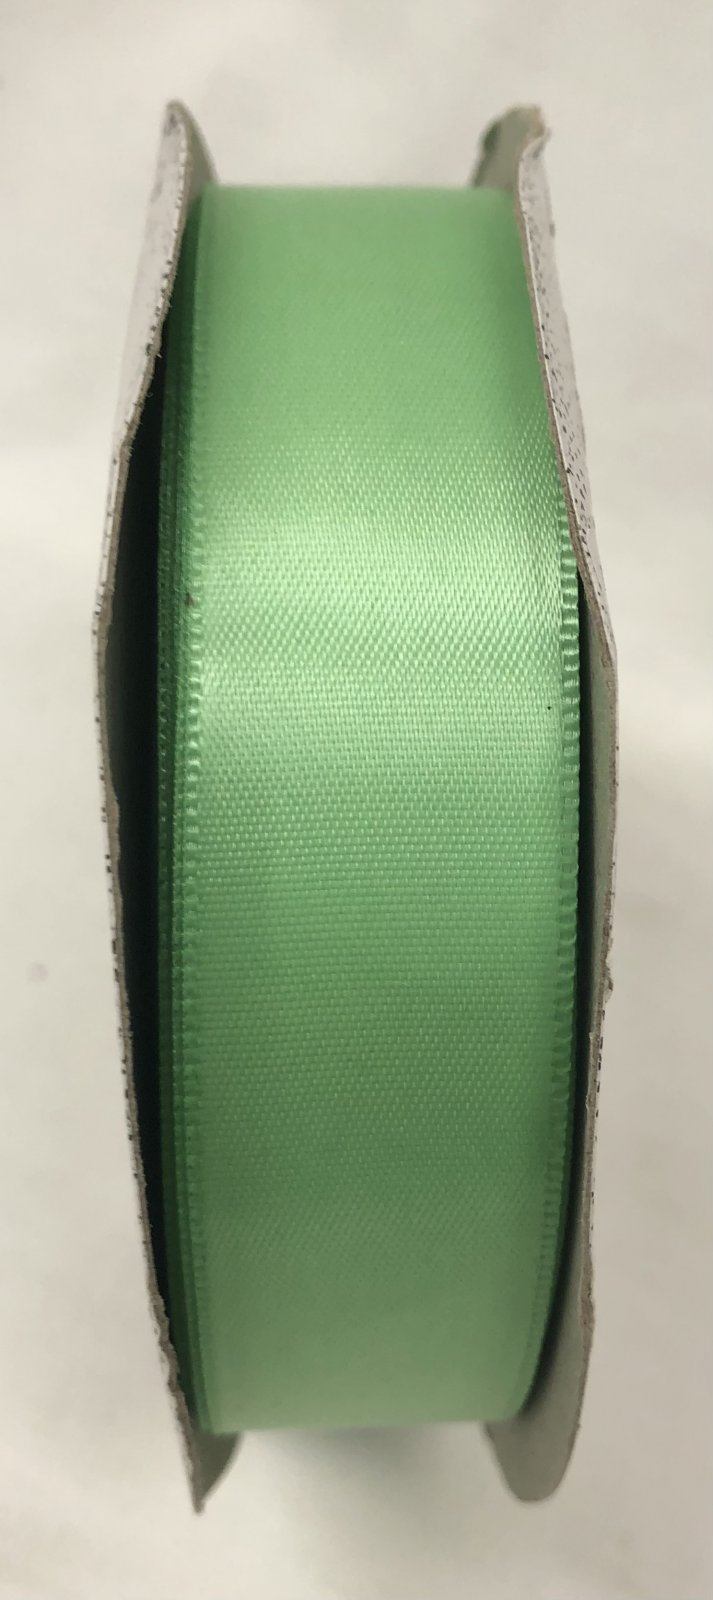 Supreme Laces Inc. 7/8IN Green Double Face Satin Ribbon